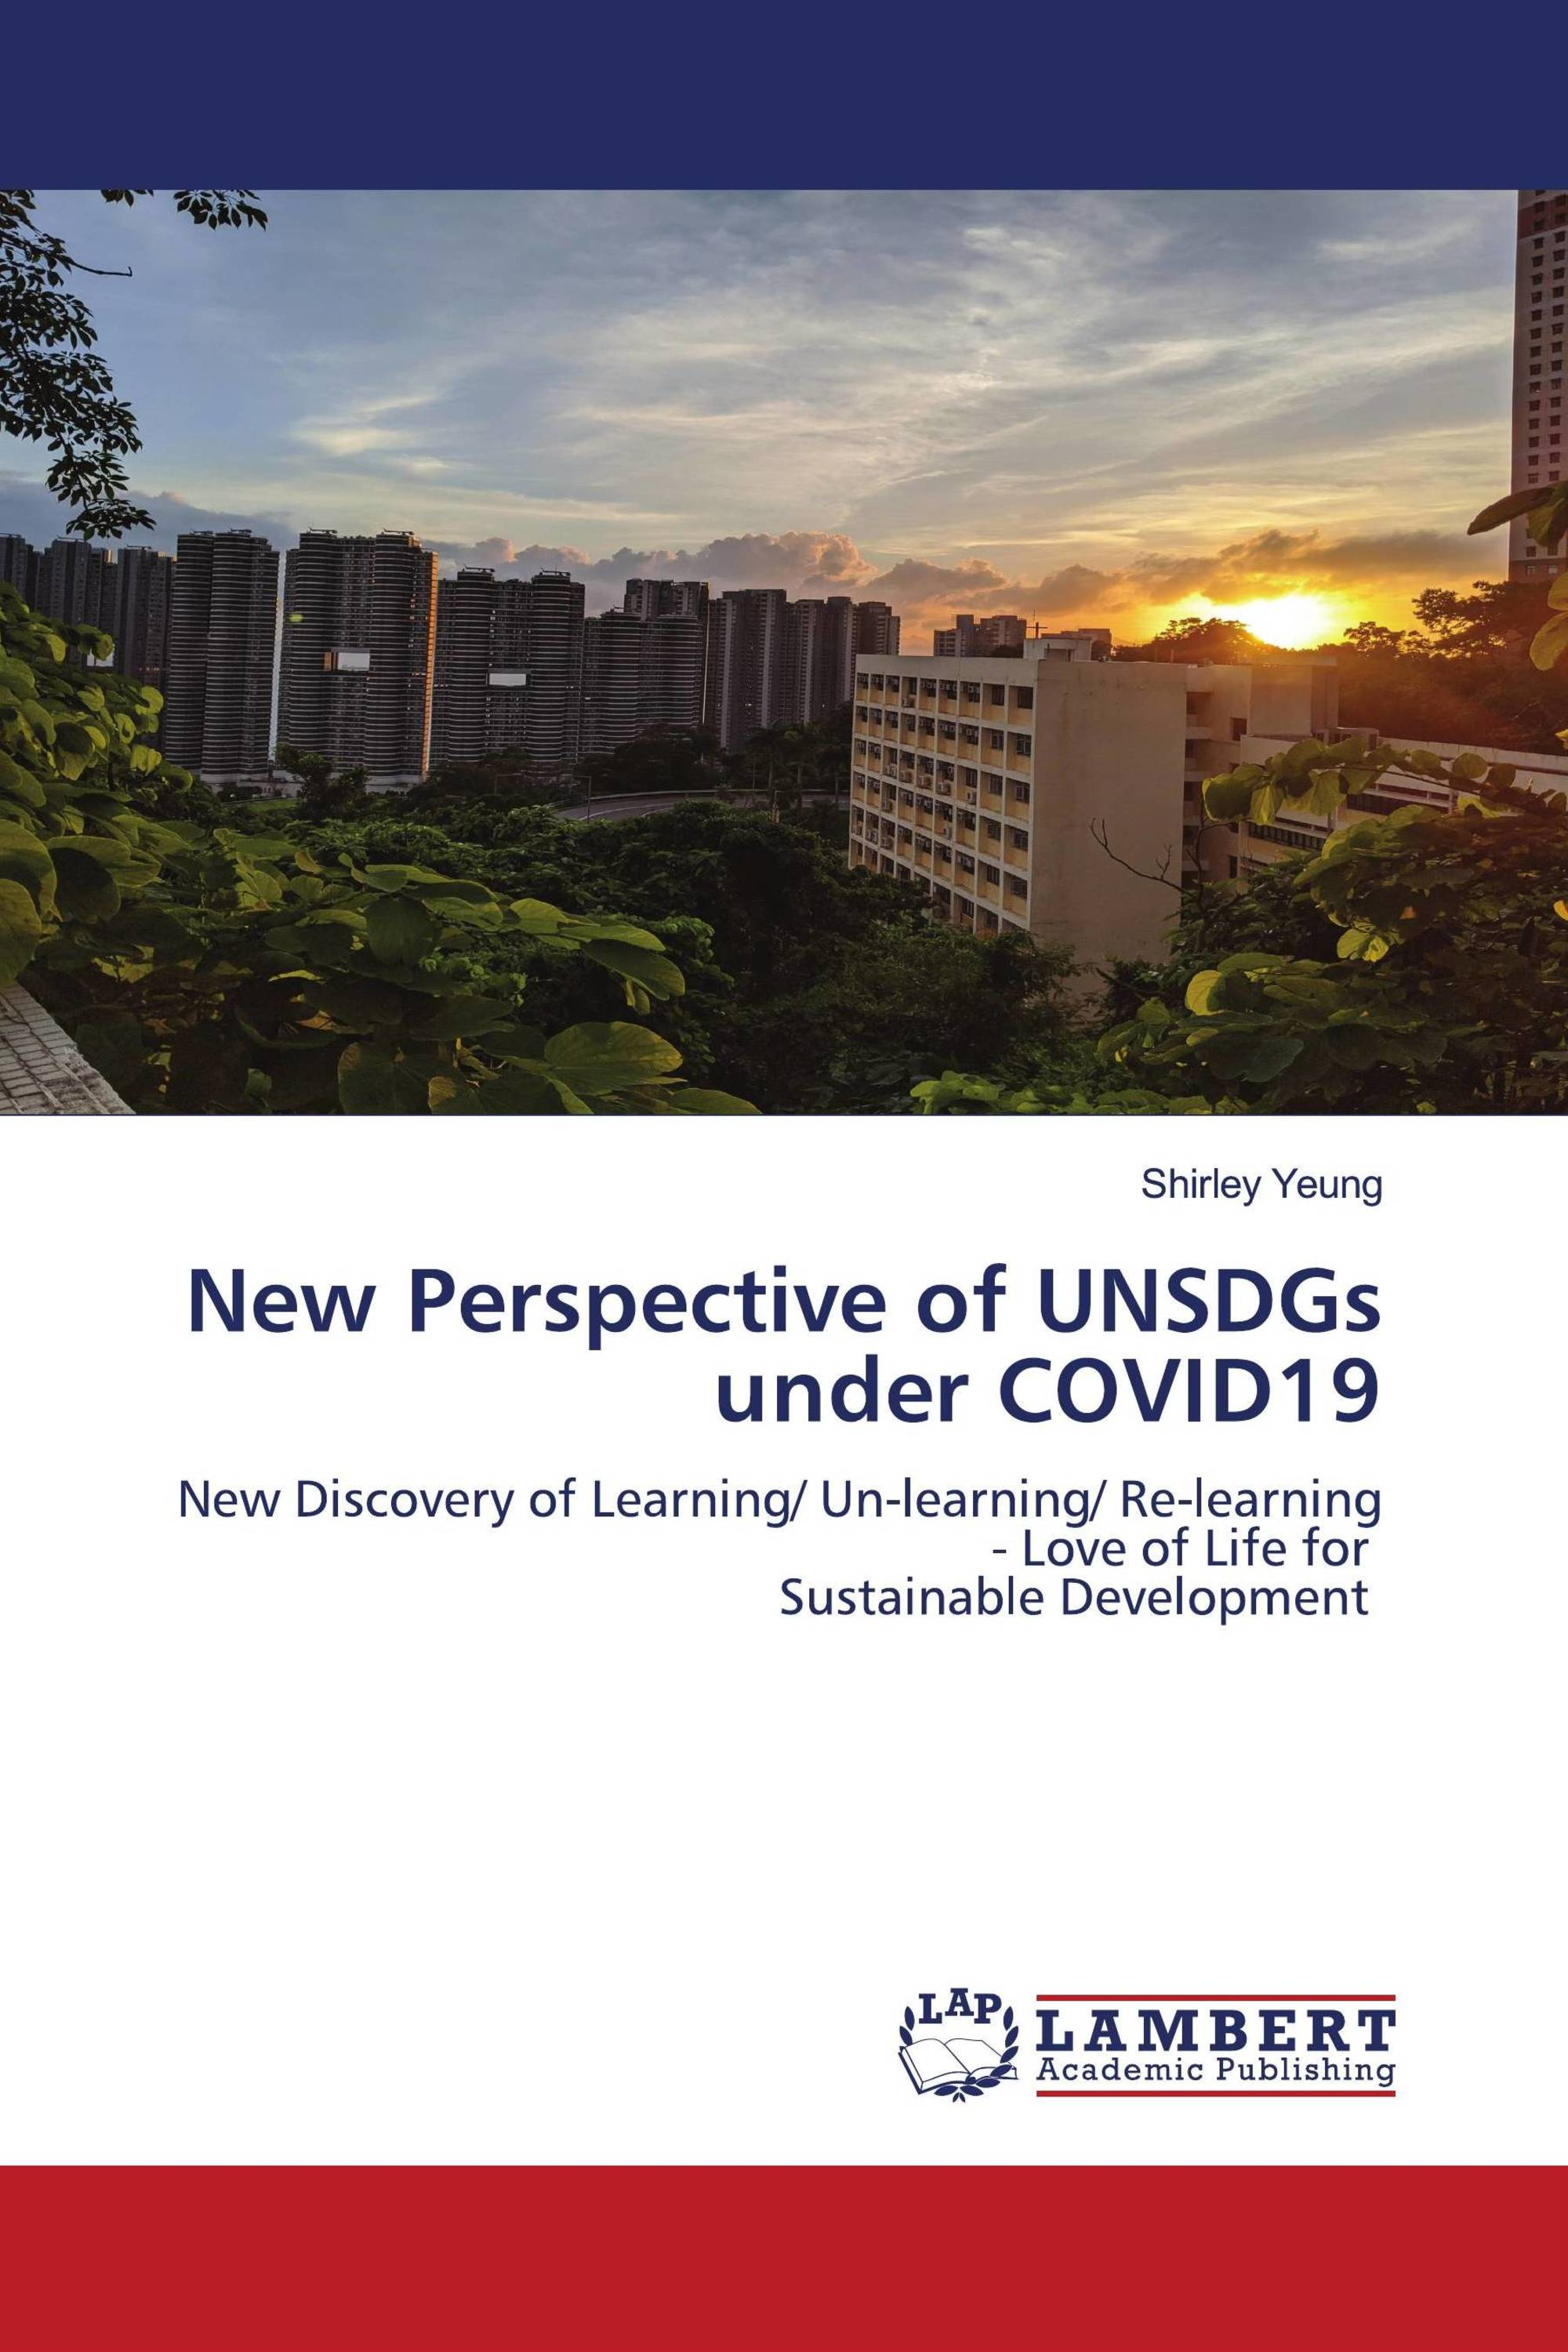 New Perspective of UNSDGs under COVID19